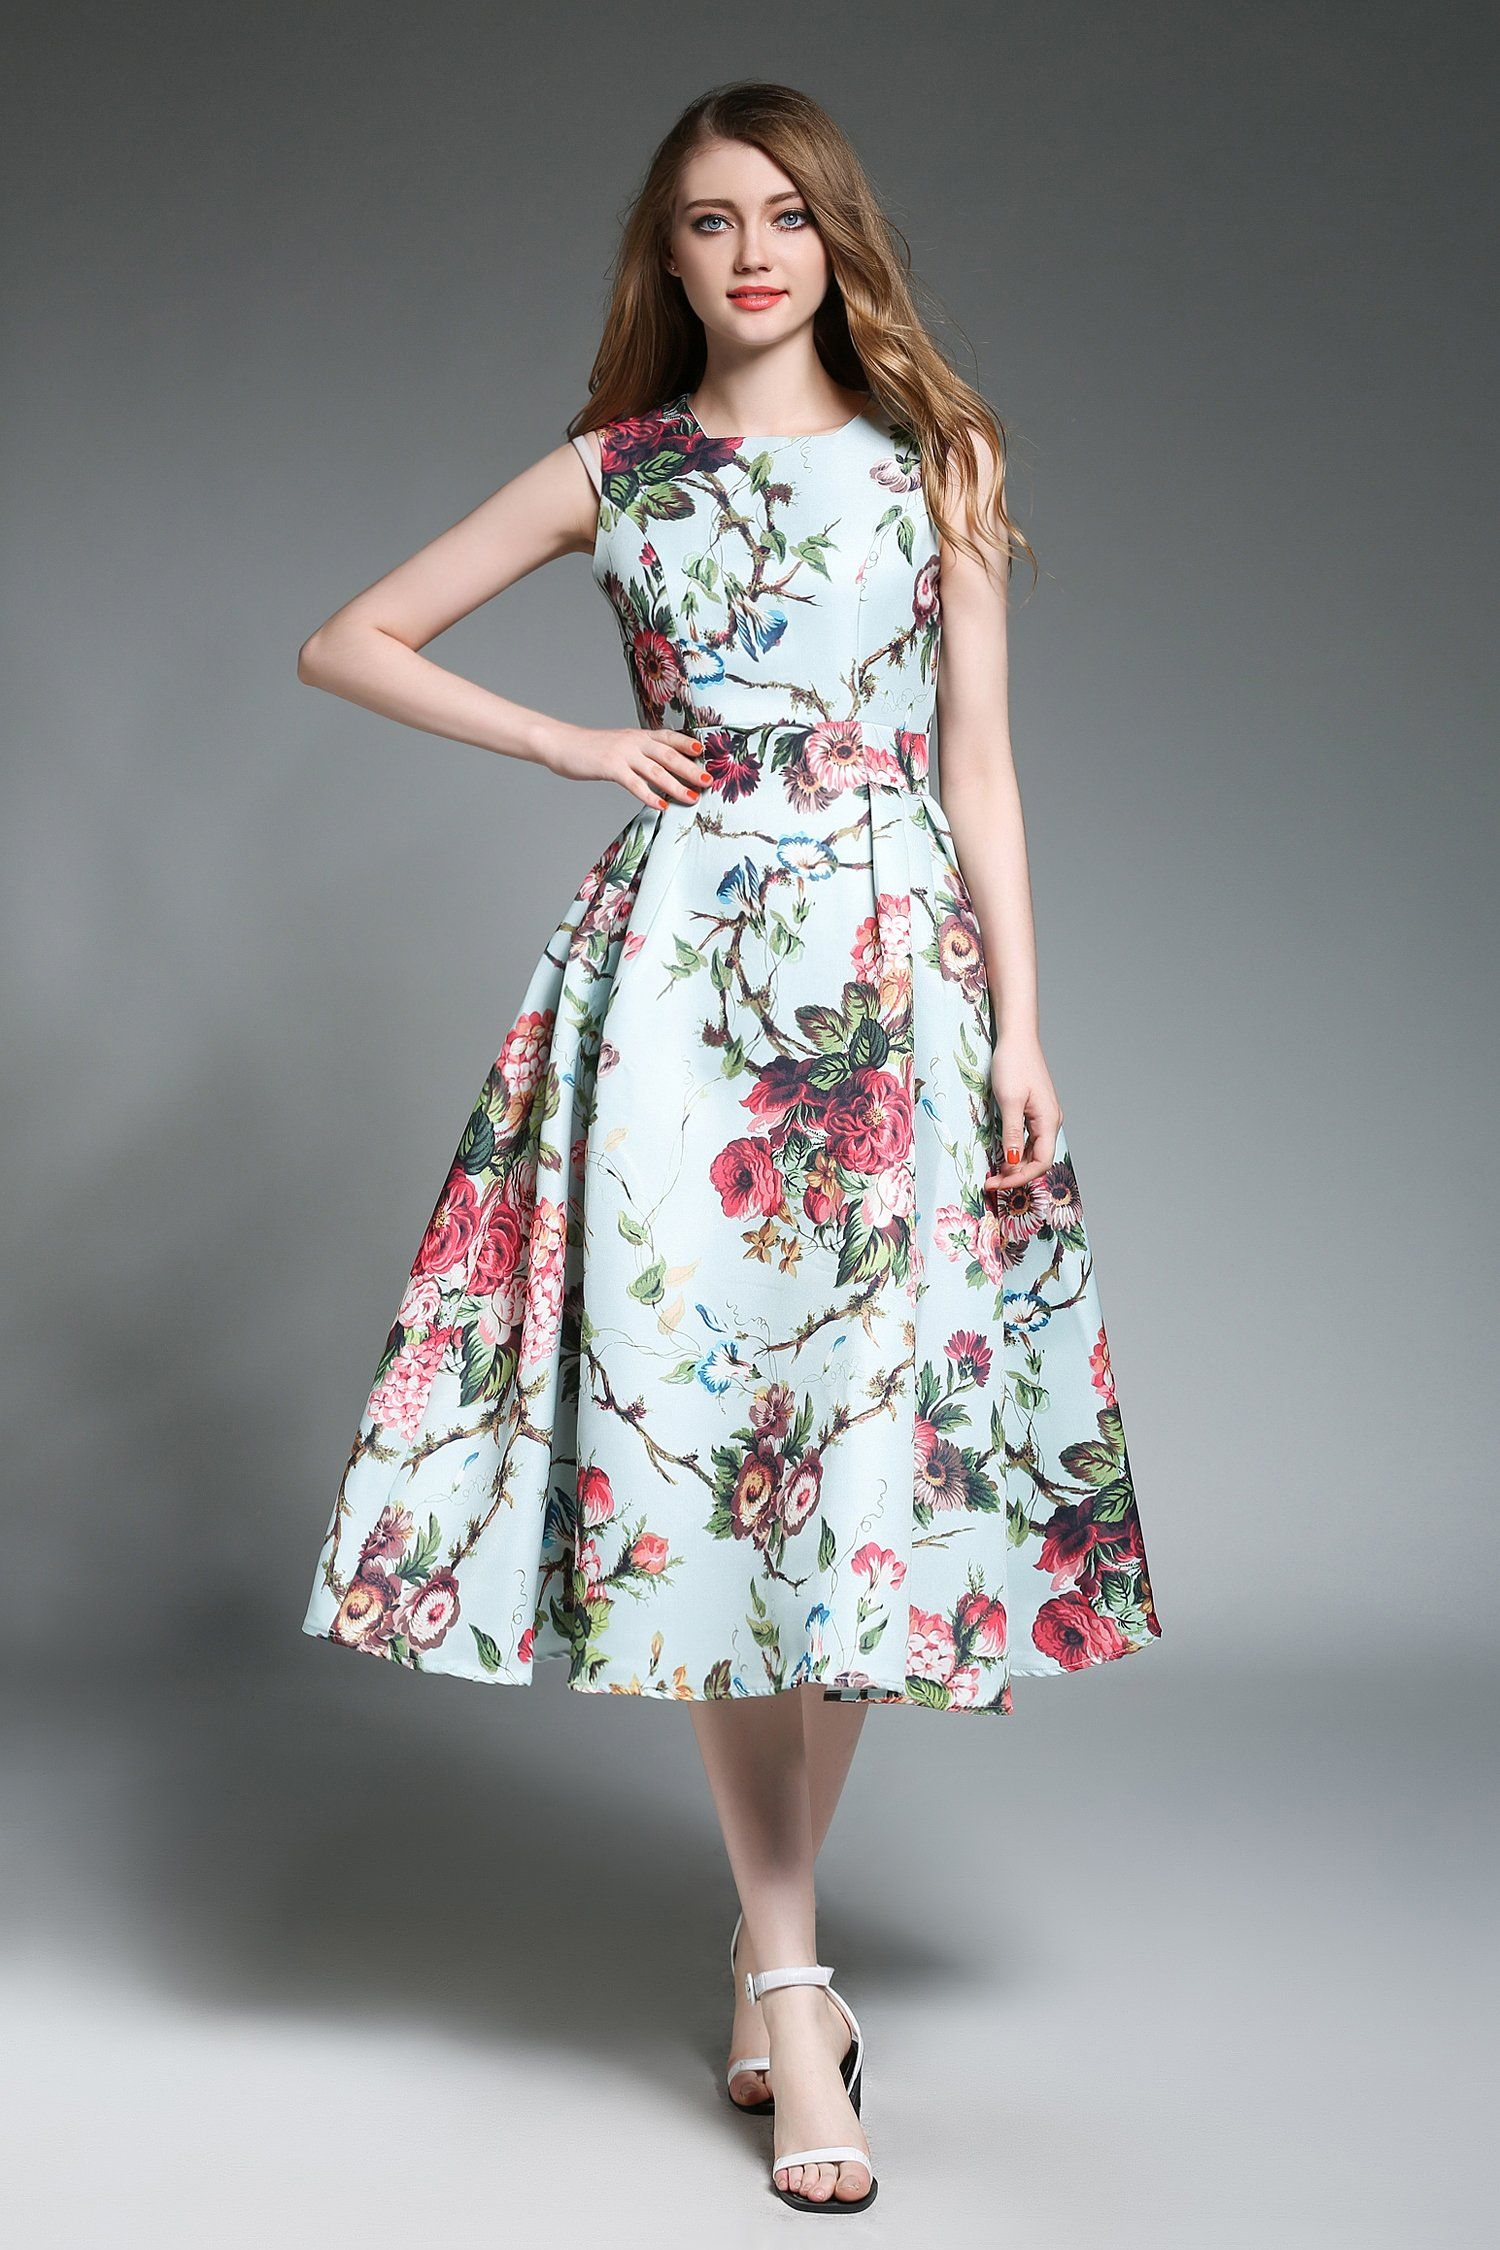 A-Line Crewneck Sleeveless Floral Printed Midi Dress  Frock for